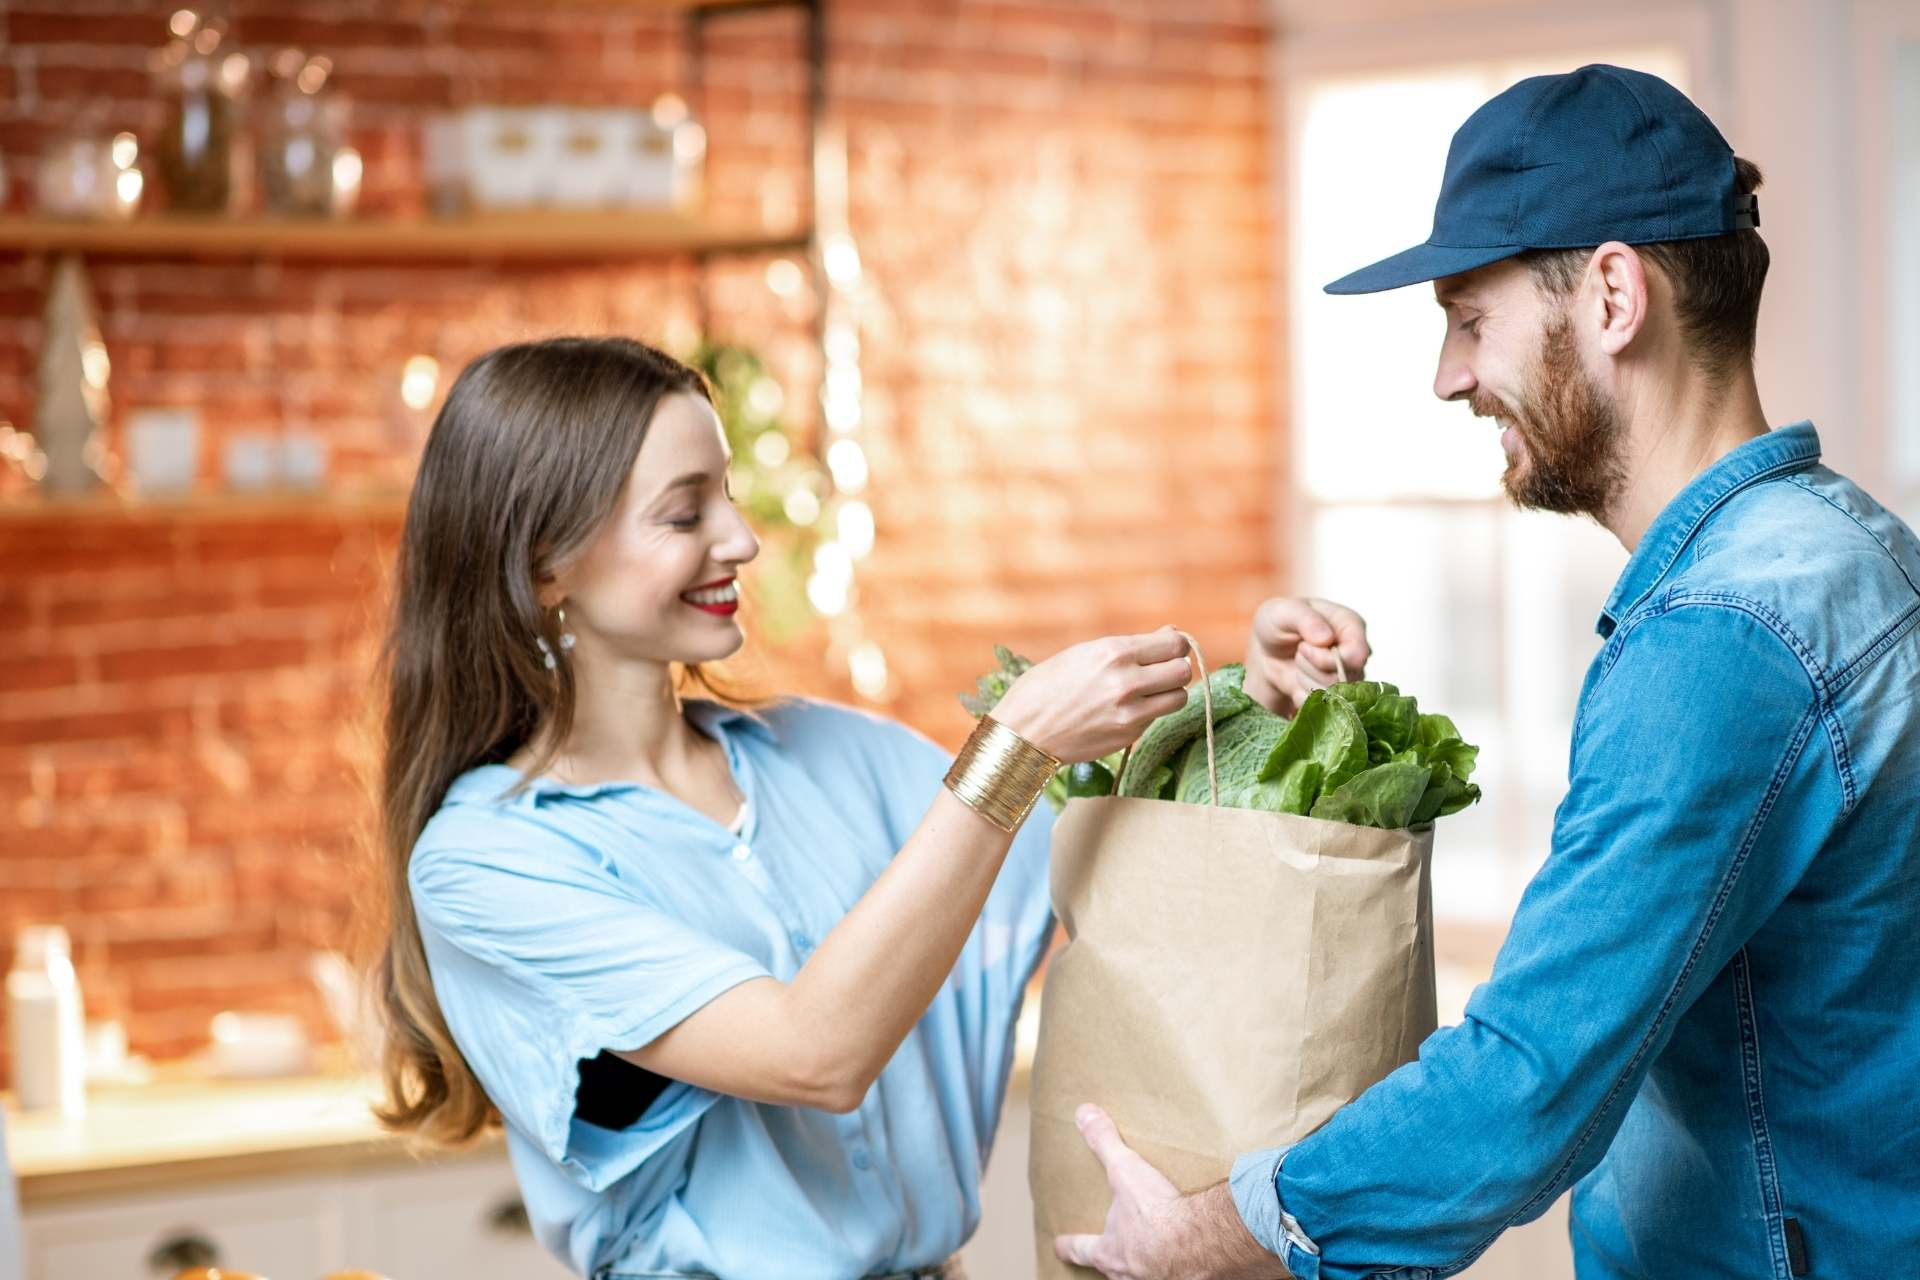 Delivery-man-arriving-to-an-household-with-groceries